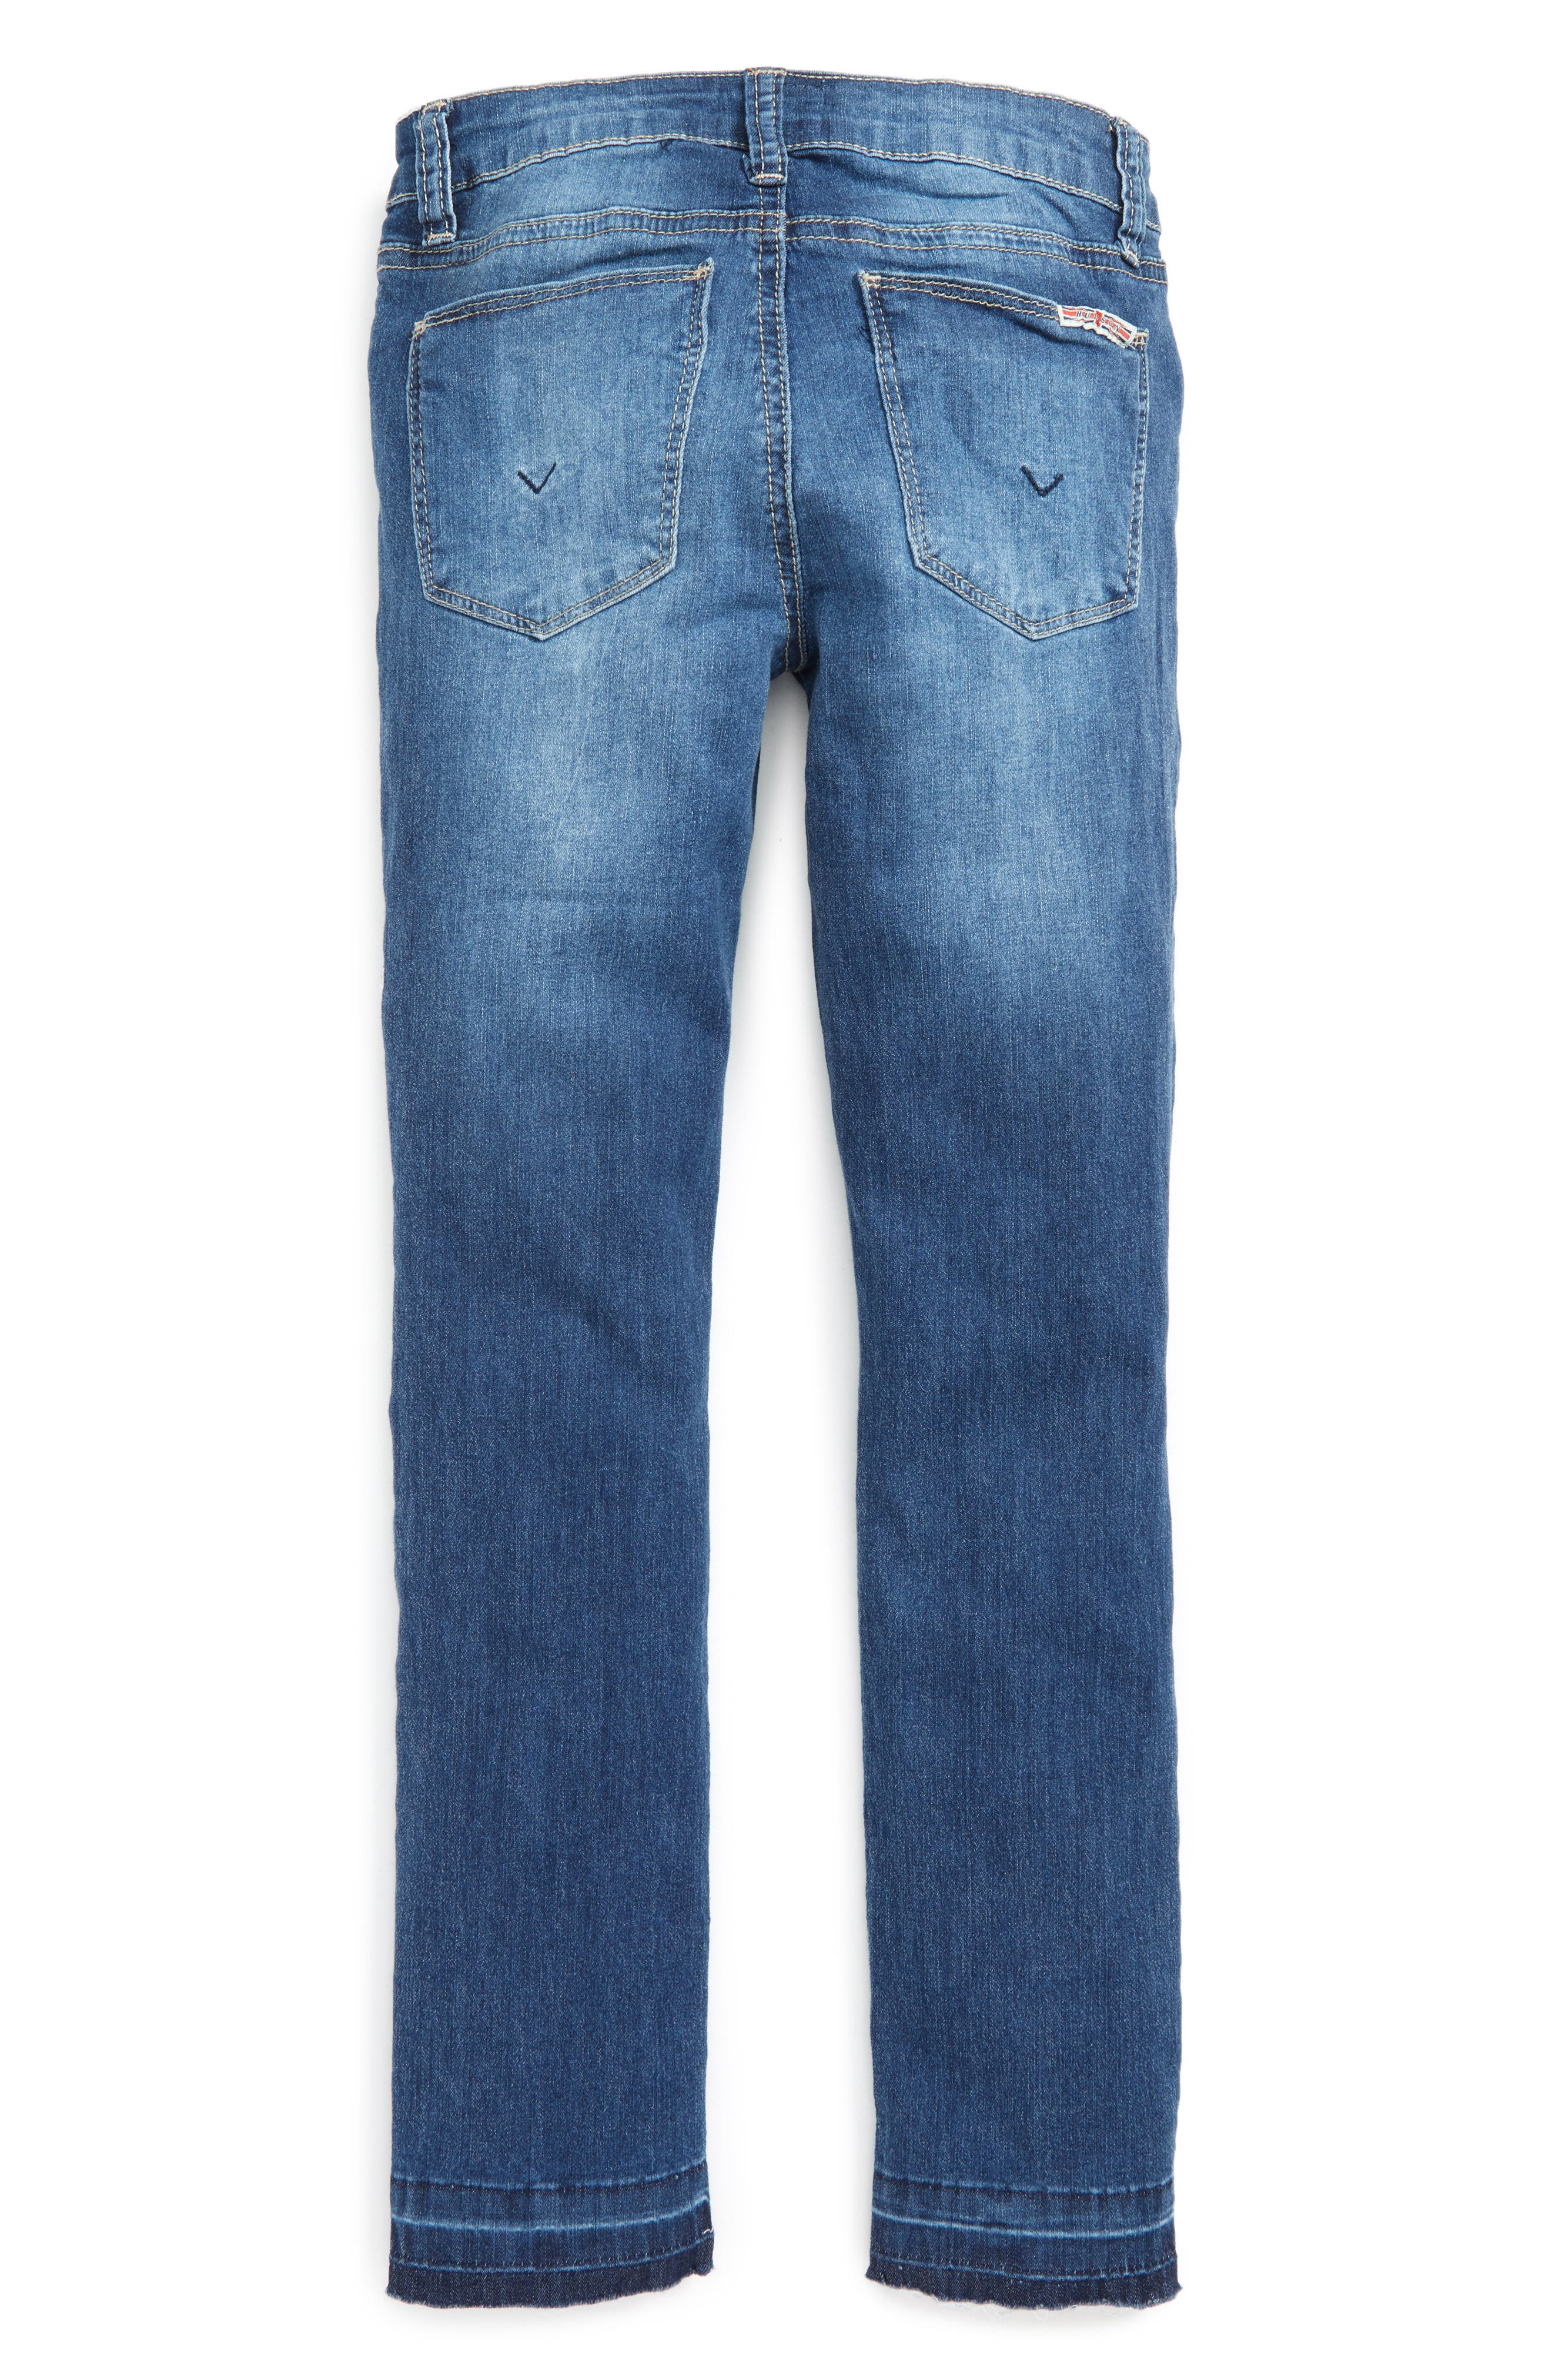 Alternate Image 2  - Hudson Kids Nico Ankle Skinny Jeans (Big Girls)